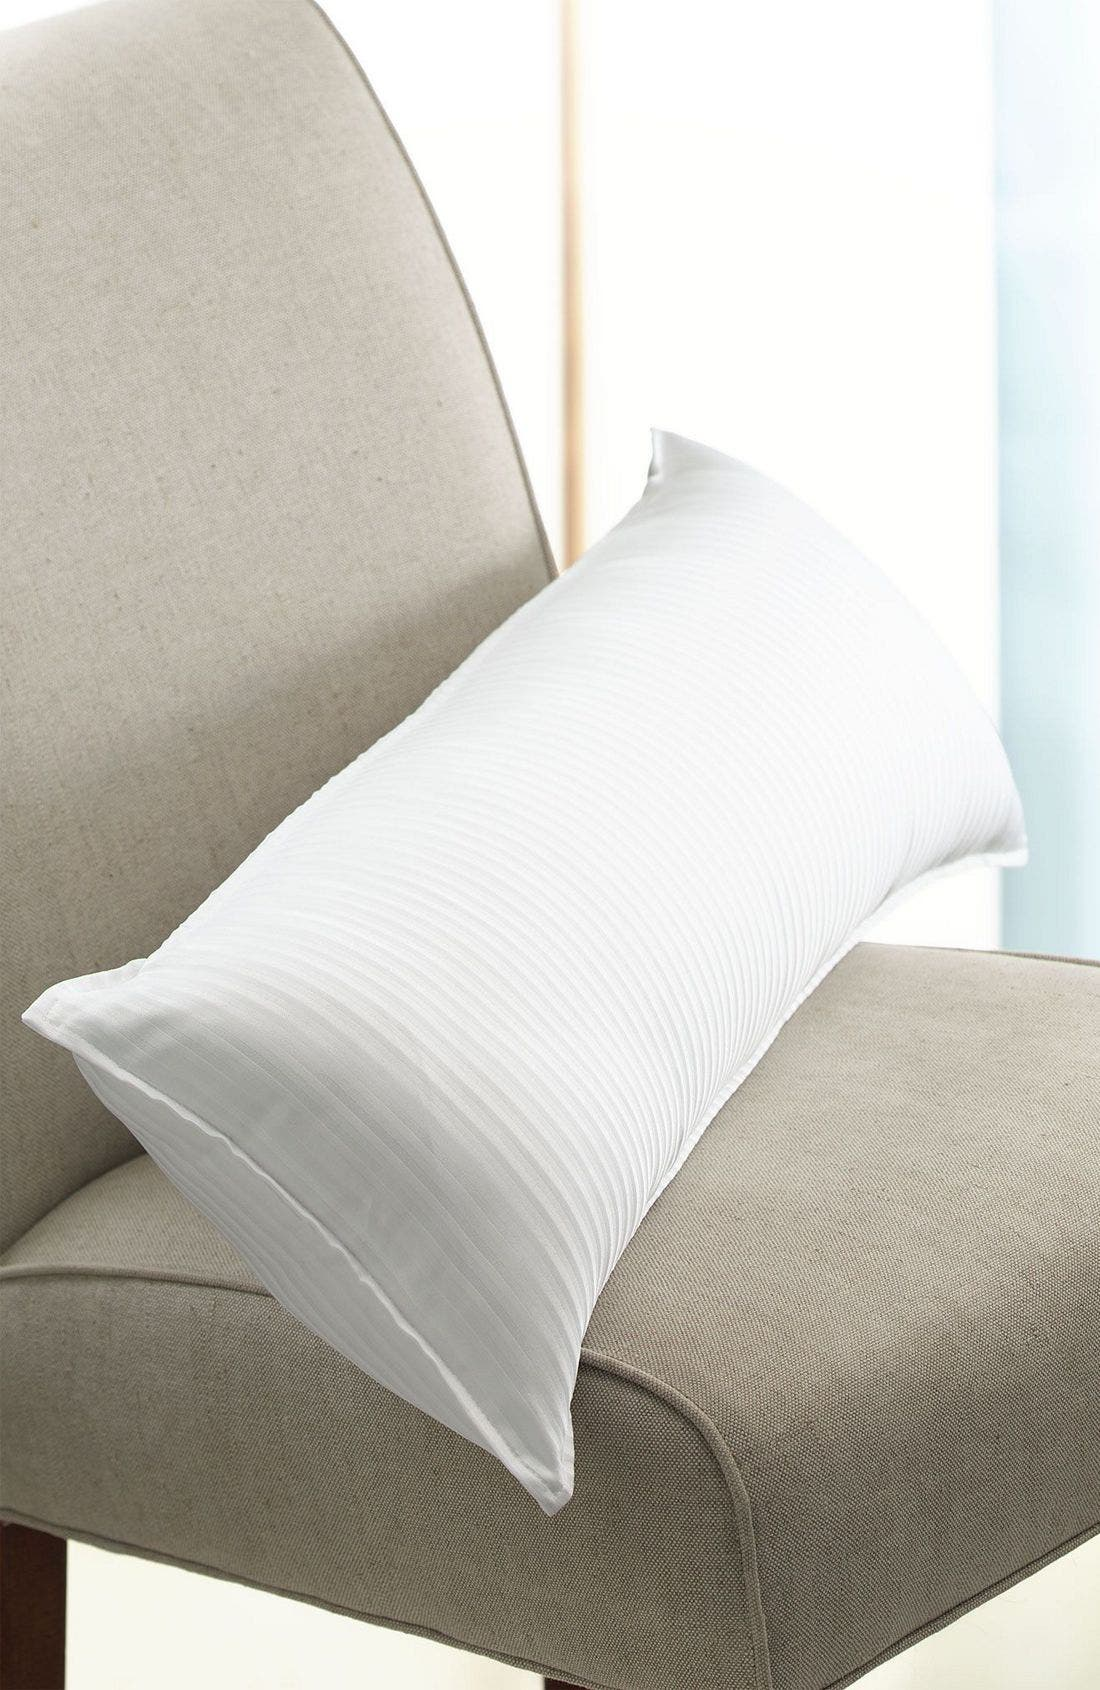 Main Image - Westin At Home Pillow & Cover